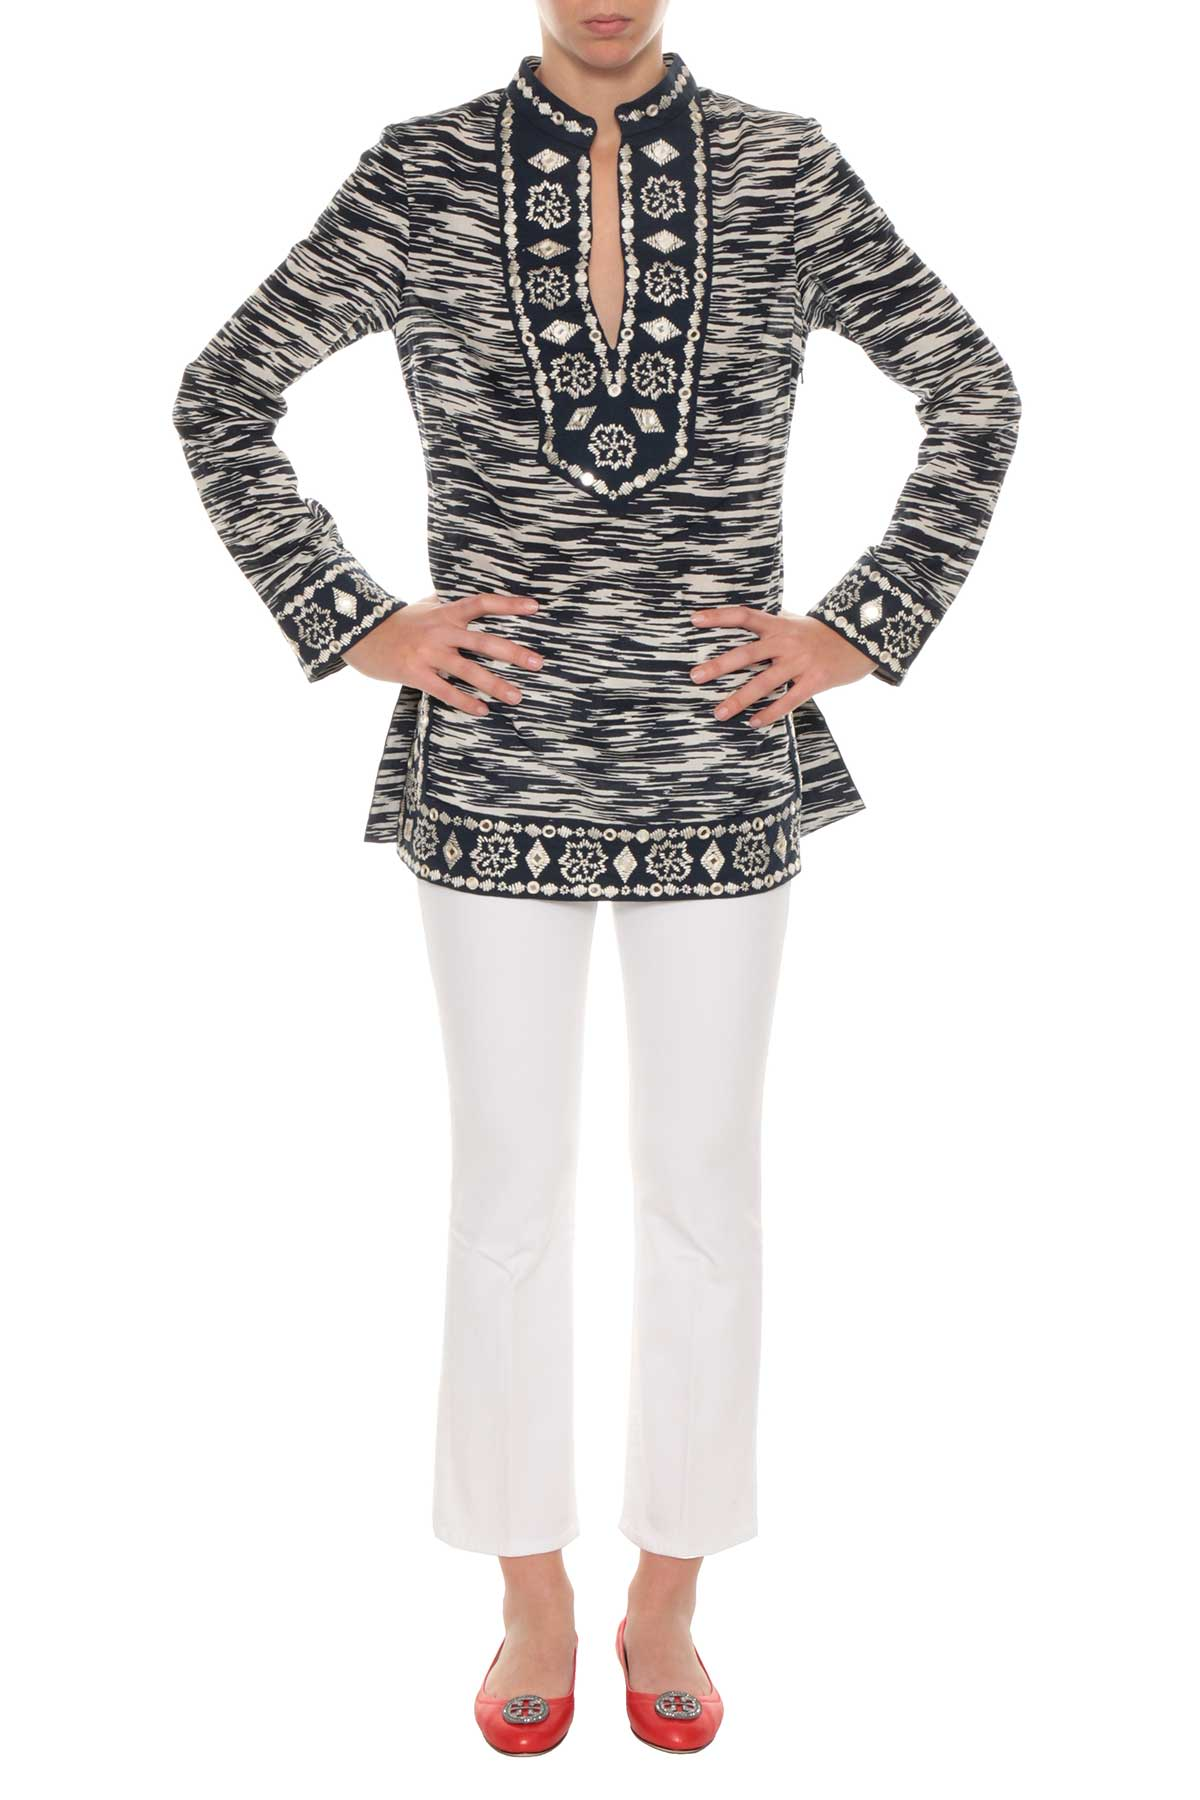 Tory Burch Tory Burch Embroidered Top